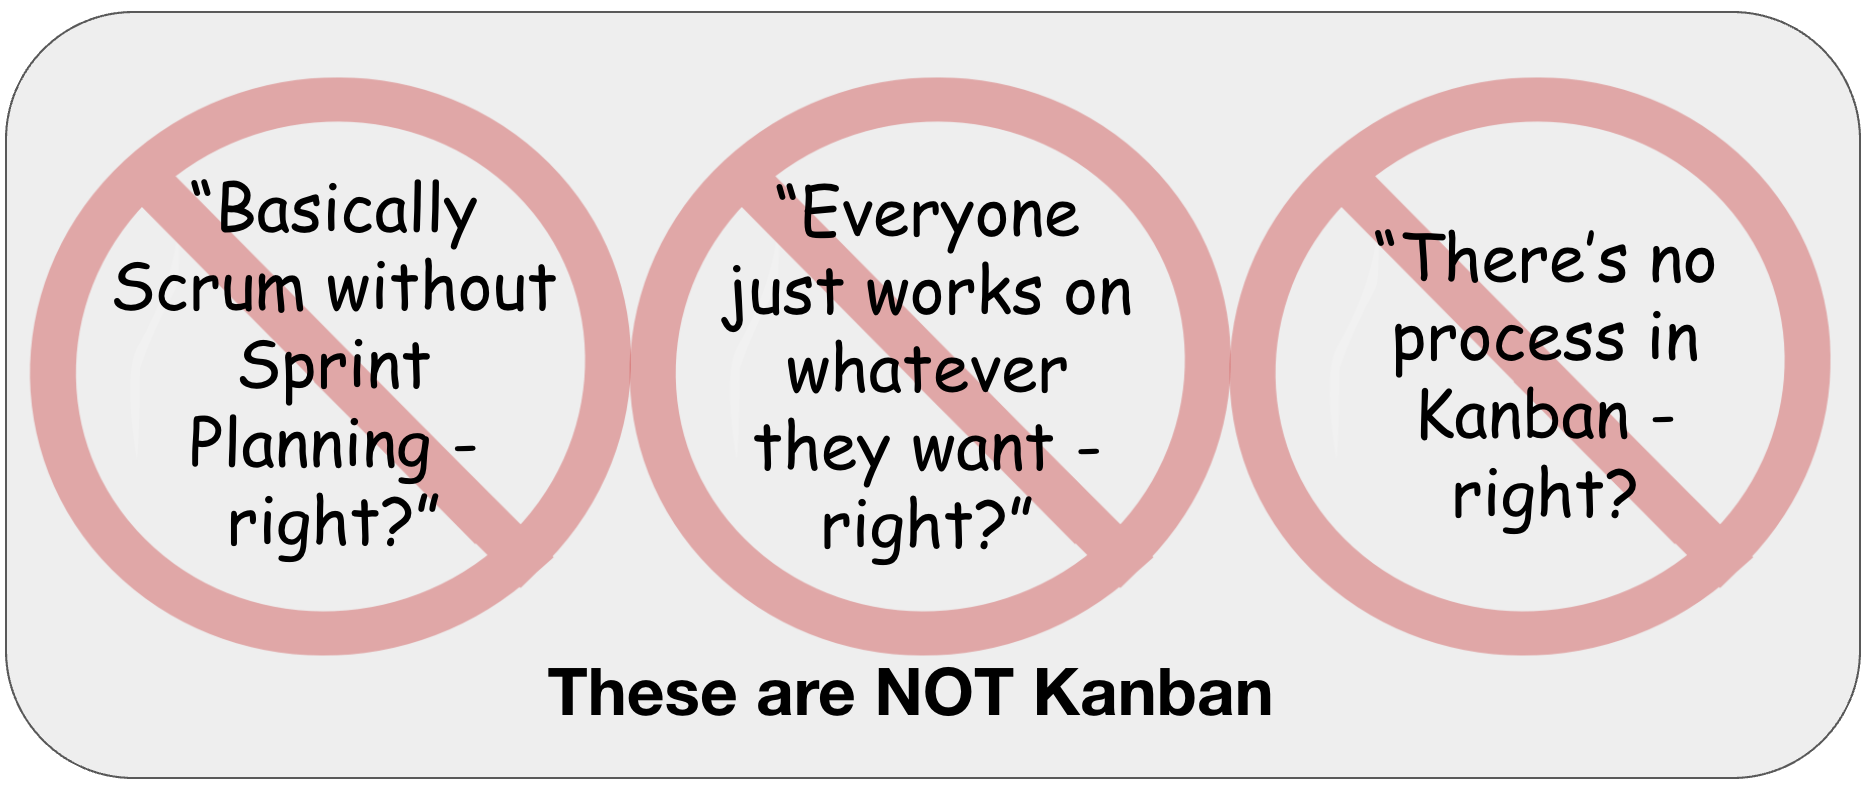 These are NOT Kanban